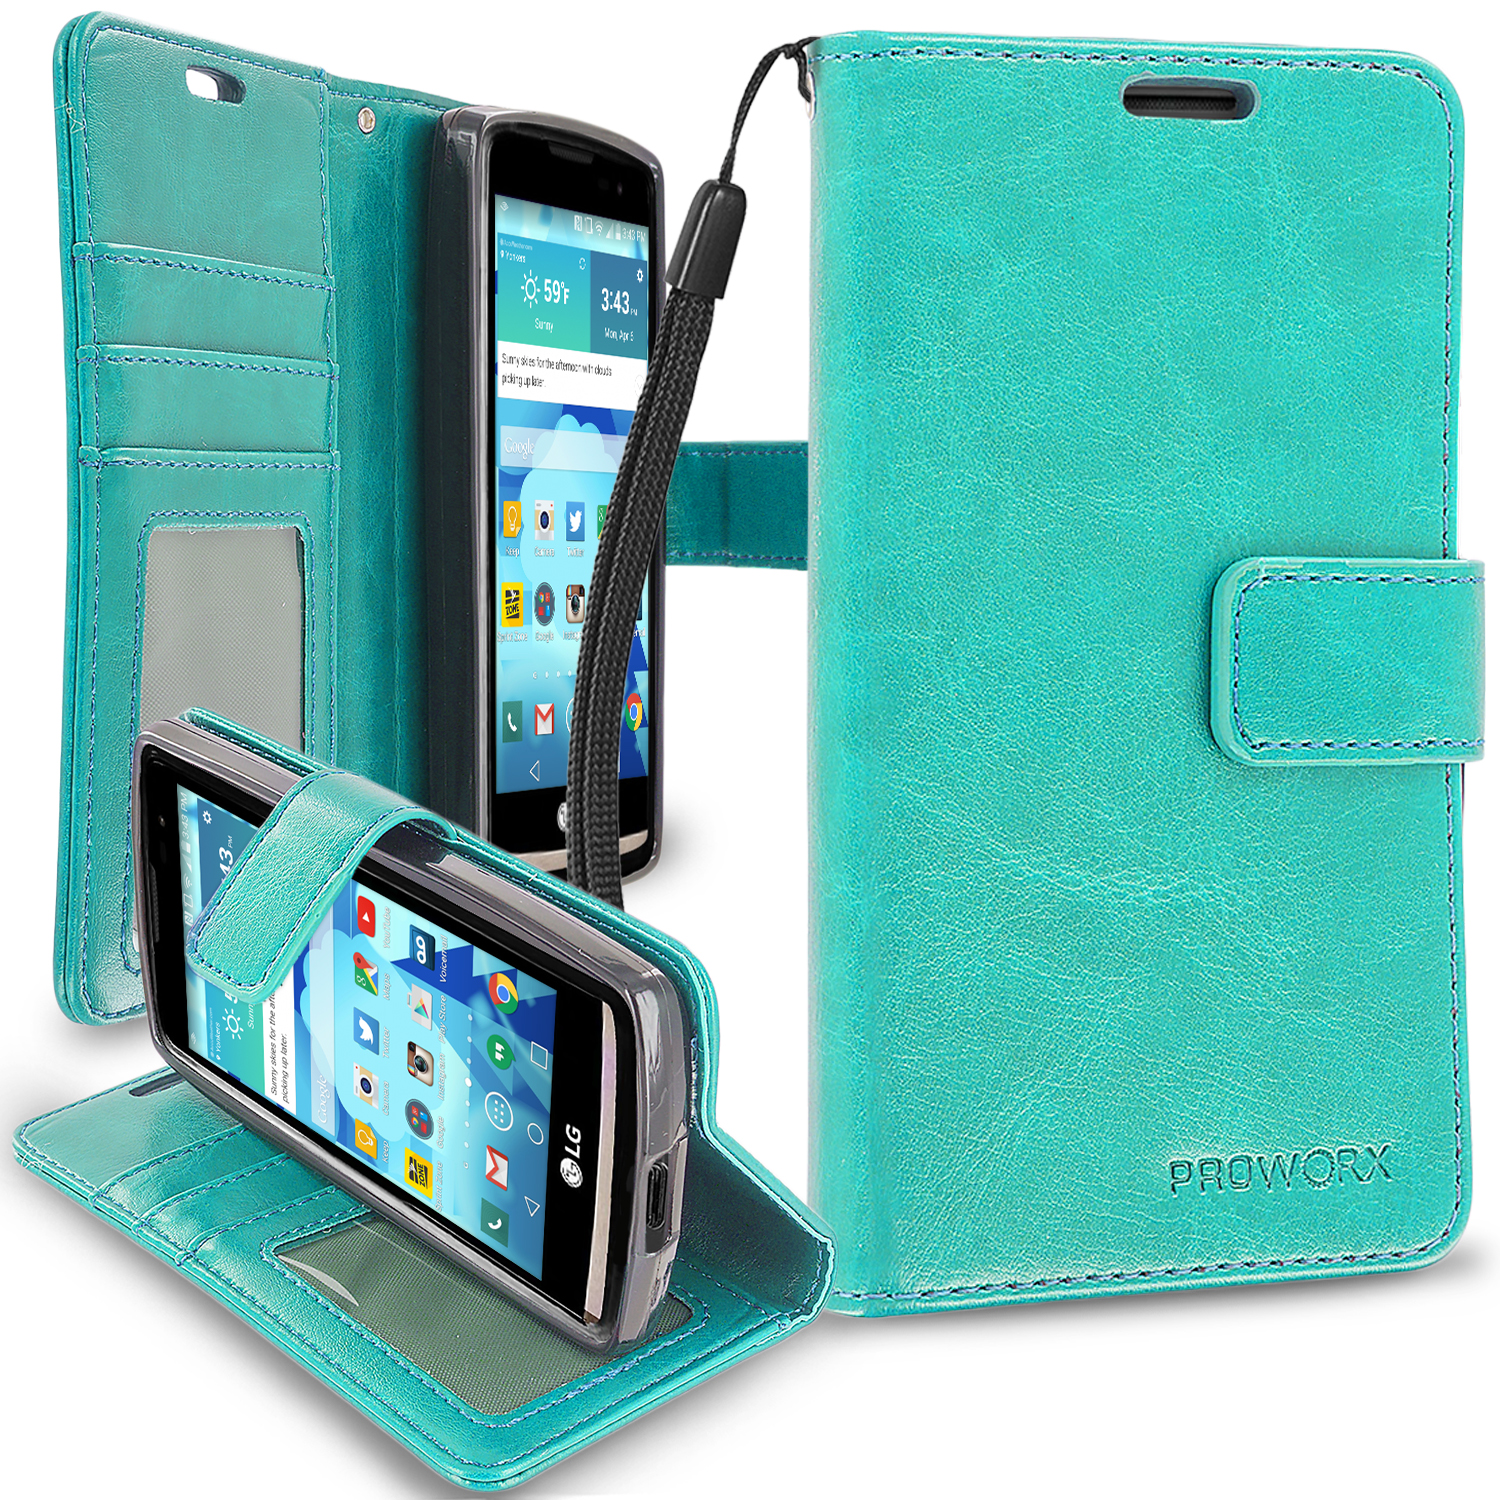 LG Tribute 2 Leon Power Destiny Mint Green ProWorx Wallet Case Luxury PU Leather Case Cover With Card Slots & Stand